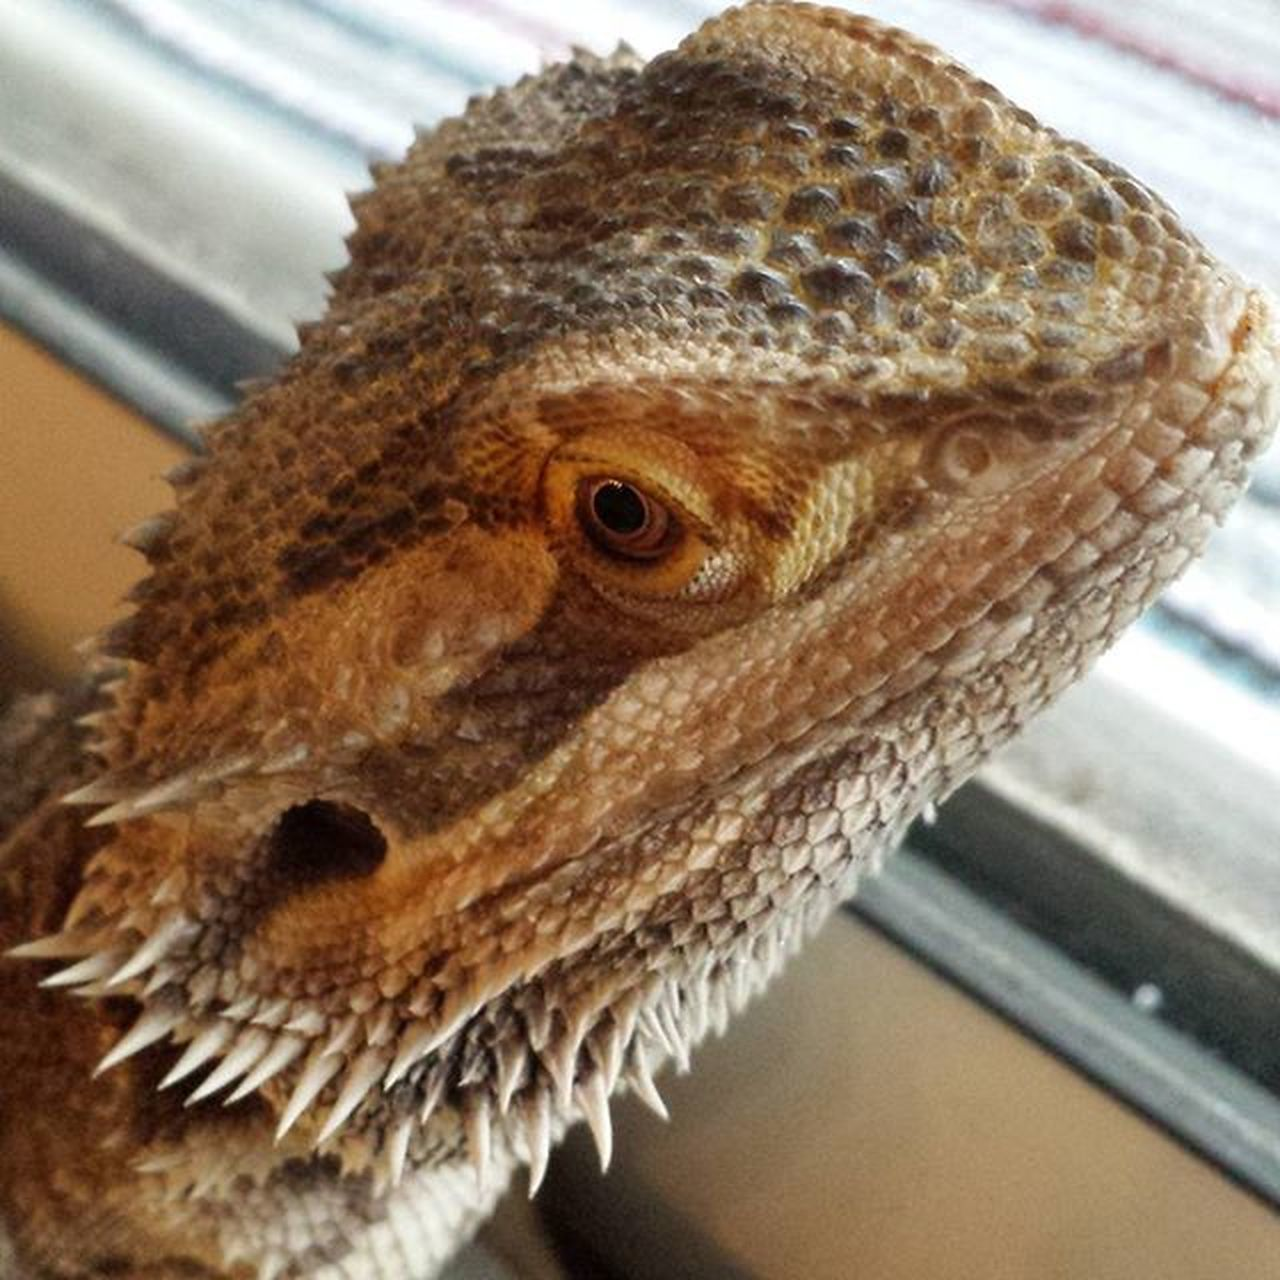 bearded dragon, indoors, one animal, close-up, animal themes, animals in the wild, reptile, no people, day